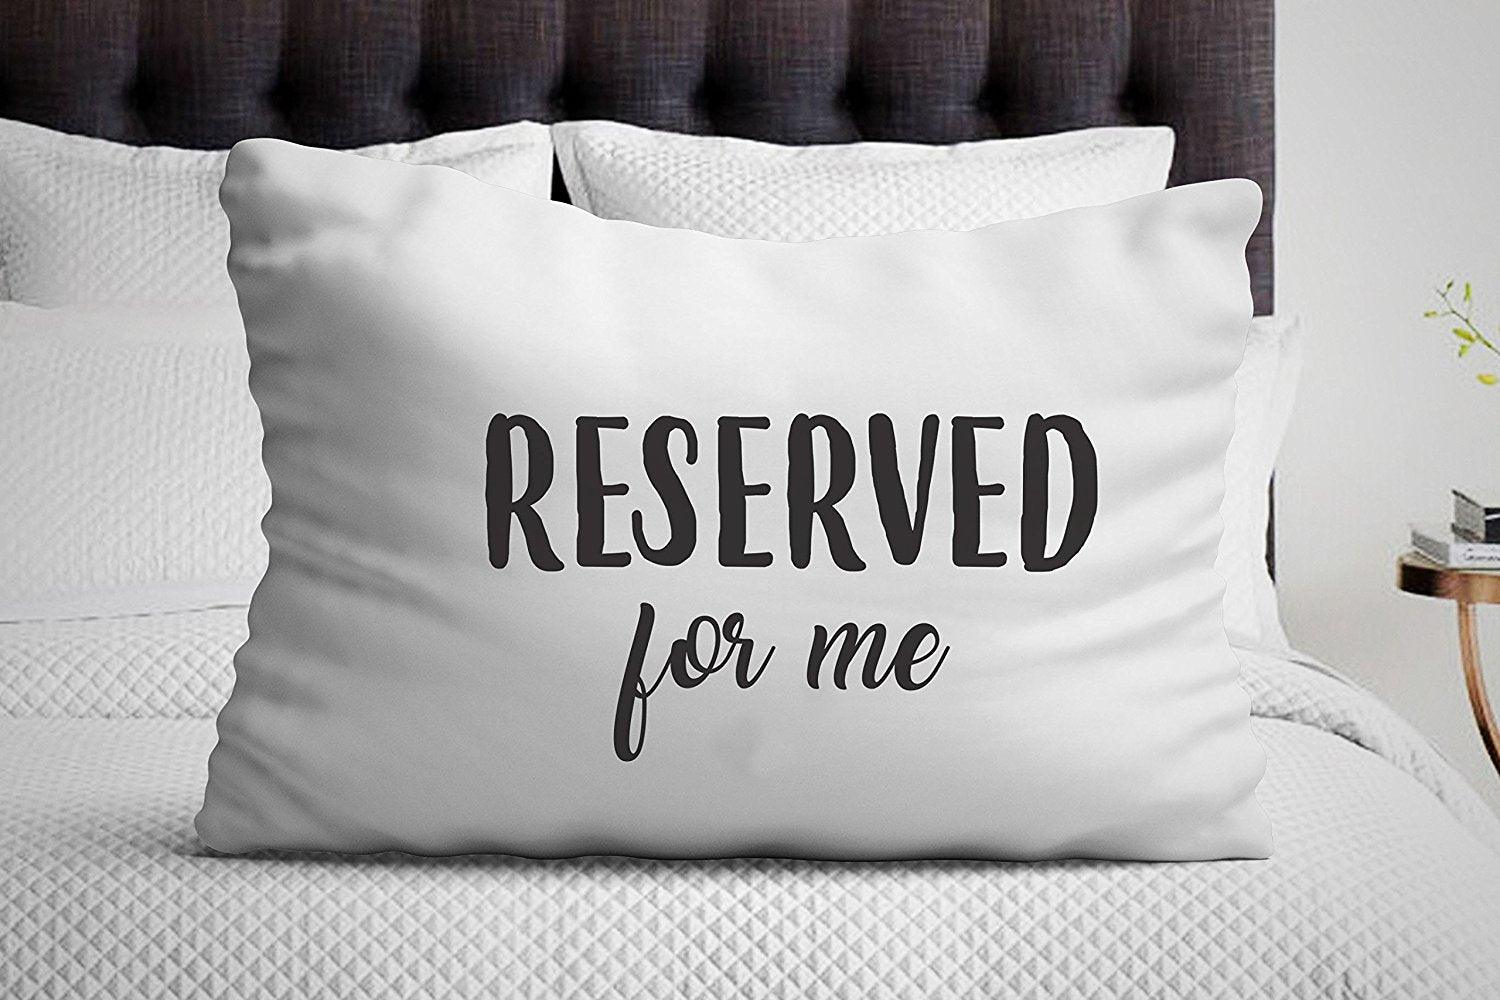 Reserved for me pillowcase - Boyfriend gifts - Unique gifts - Funny gifts - Bedroom decor - Bedding pillow - Gift for him - BOSTON CREATIVE COMPANY